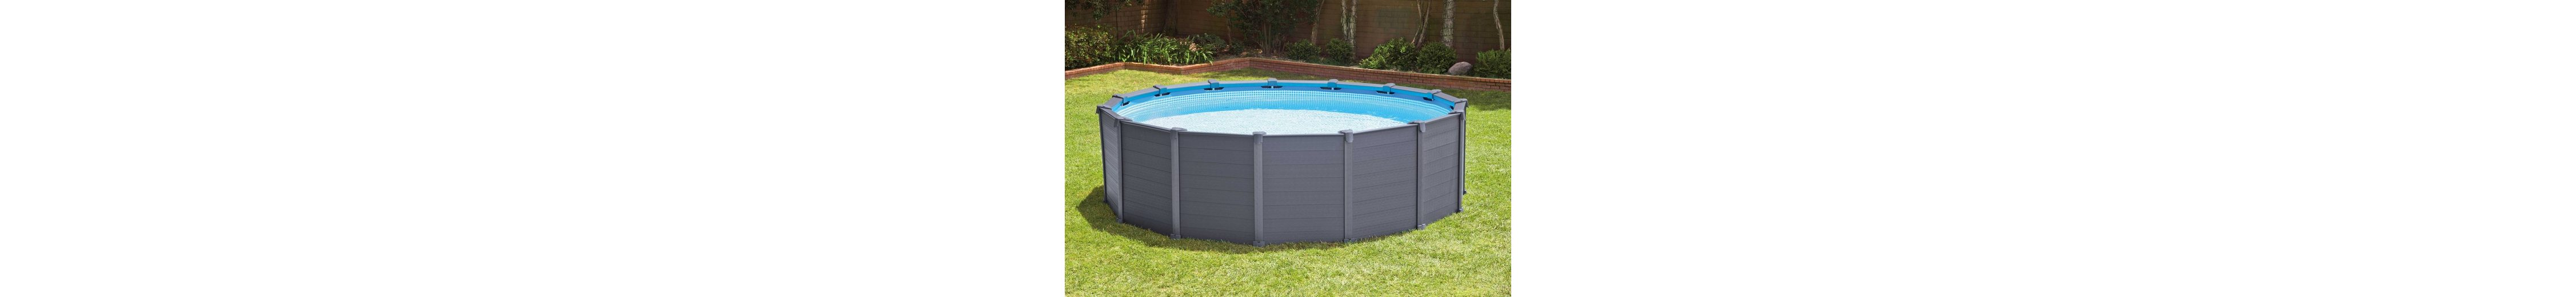 Intex Pool-Set mit Sandfilteranlage, Ø 478 cm, »Graphite Panel Pool Komplett-Set«